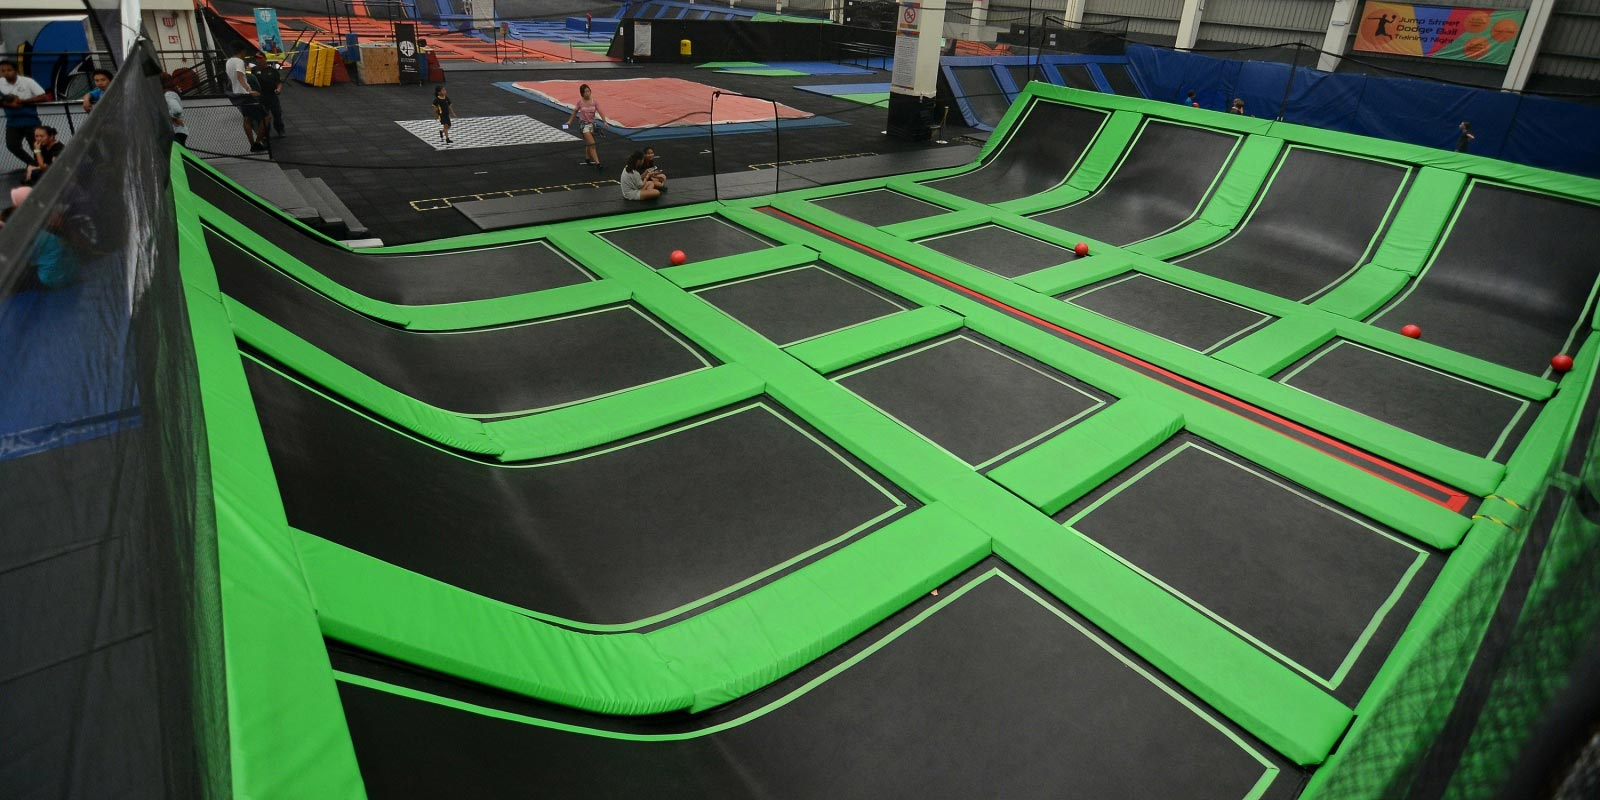 one of the top five indoor activities in Northern Virginia which is a trampoline park